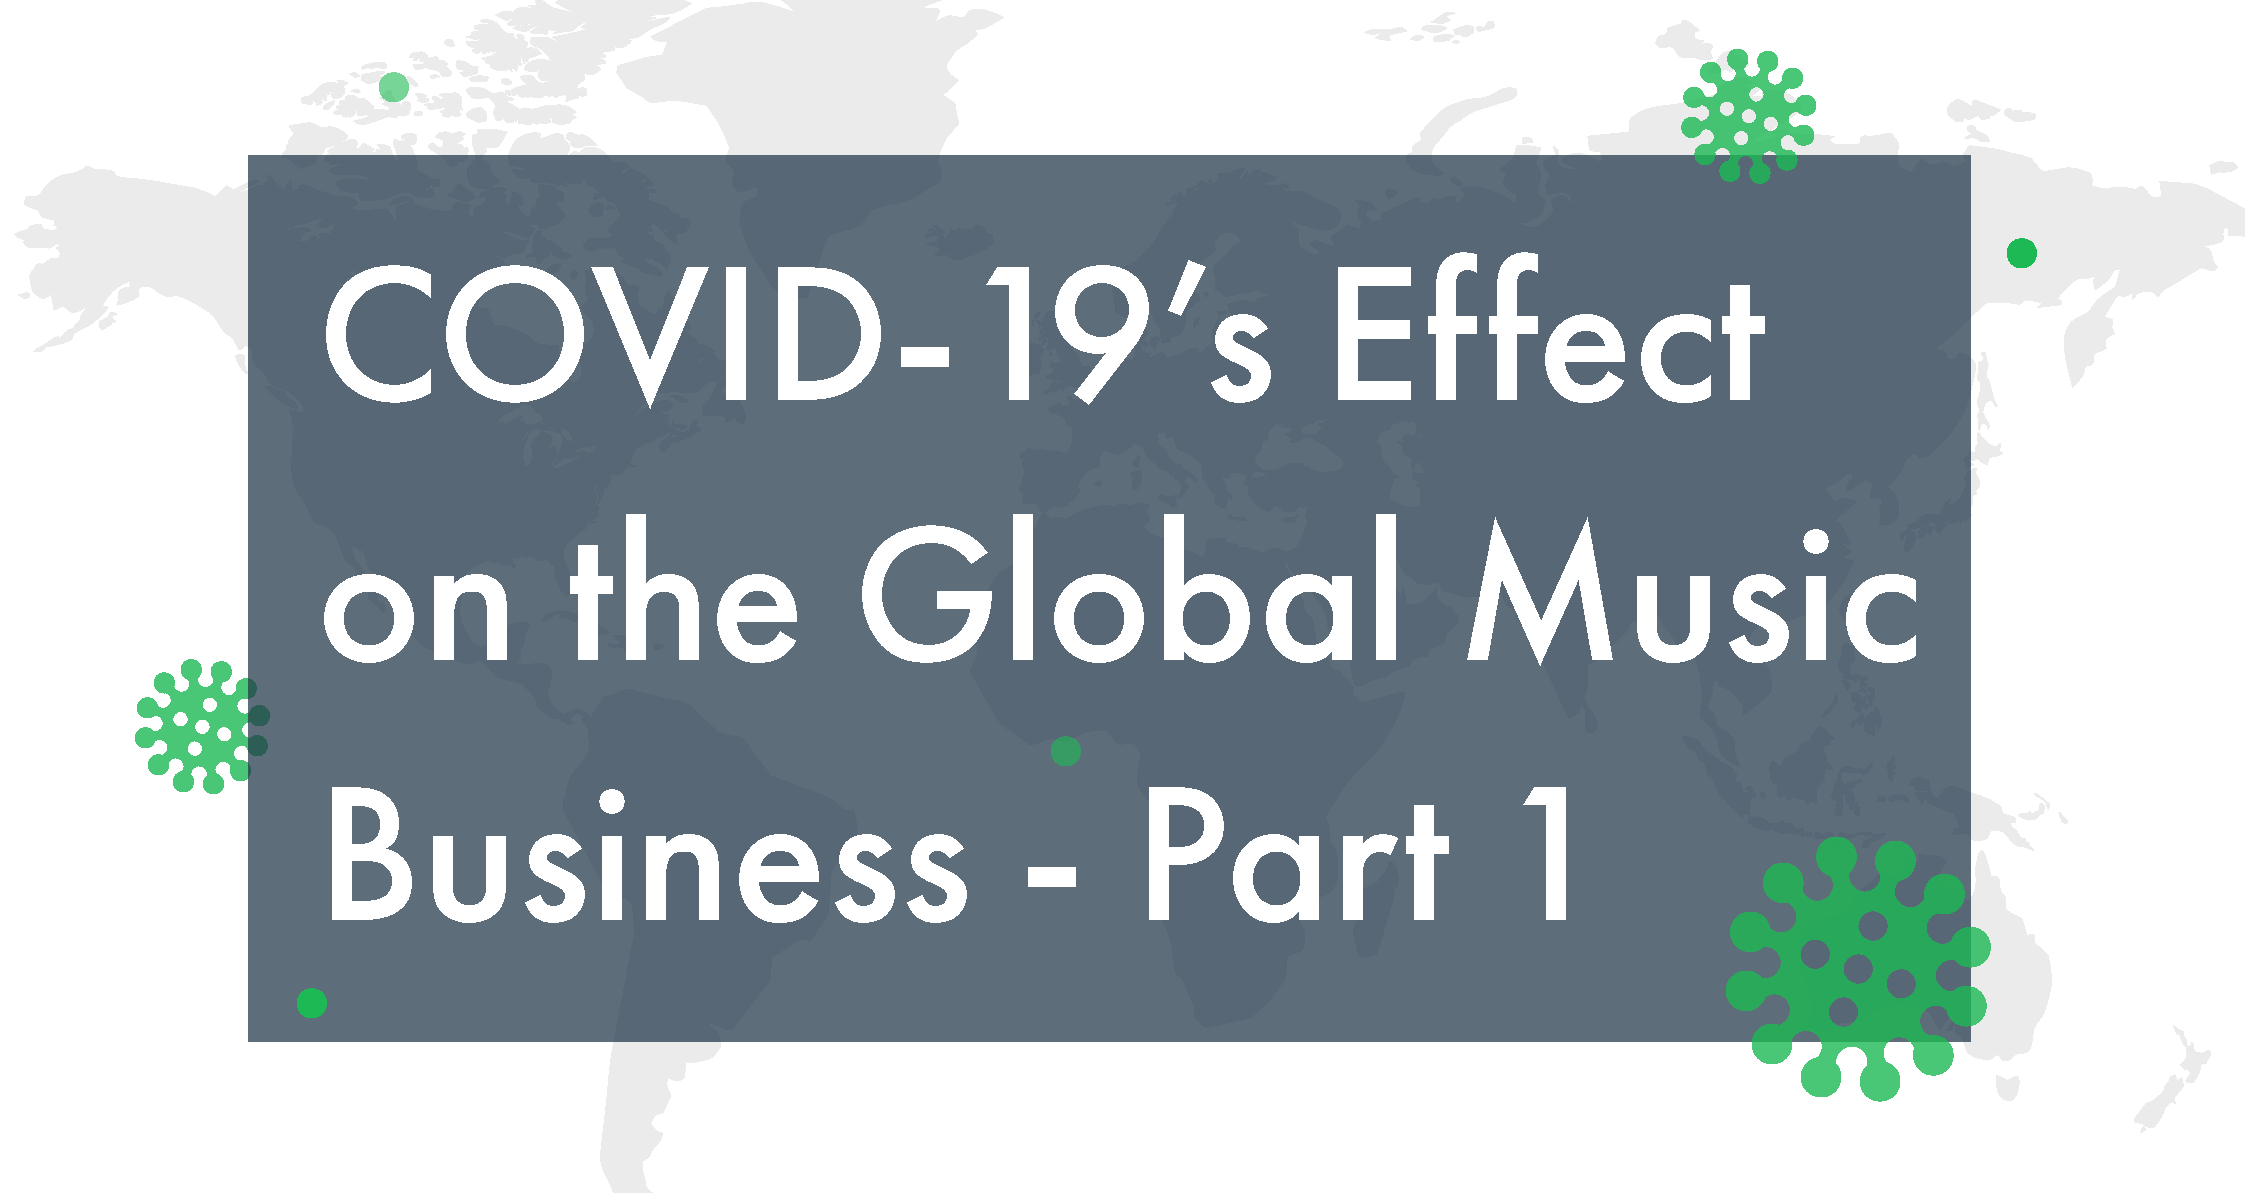 COVID-19's Effect on the Global Music Business, Part 1: Genre